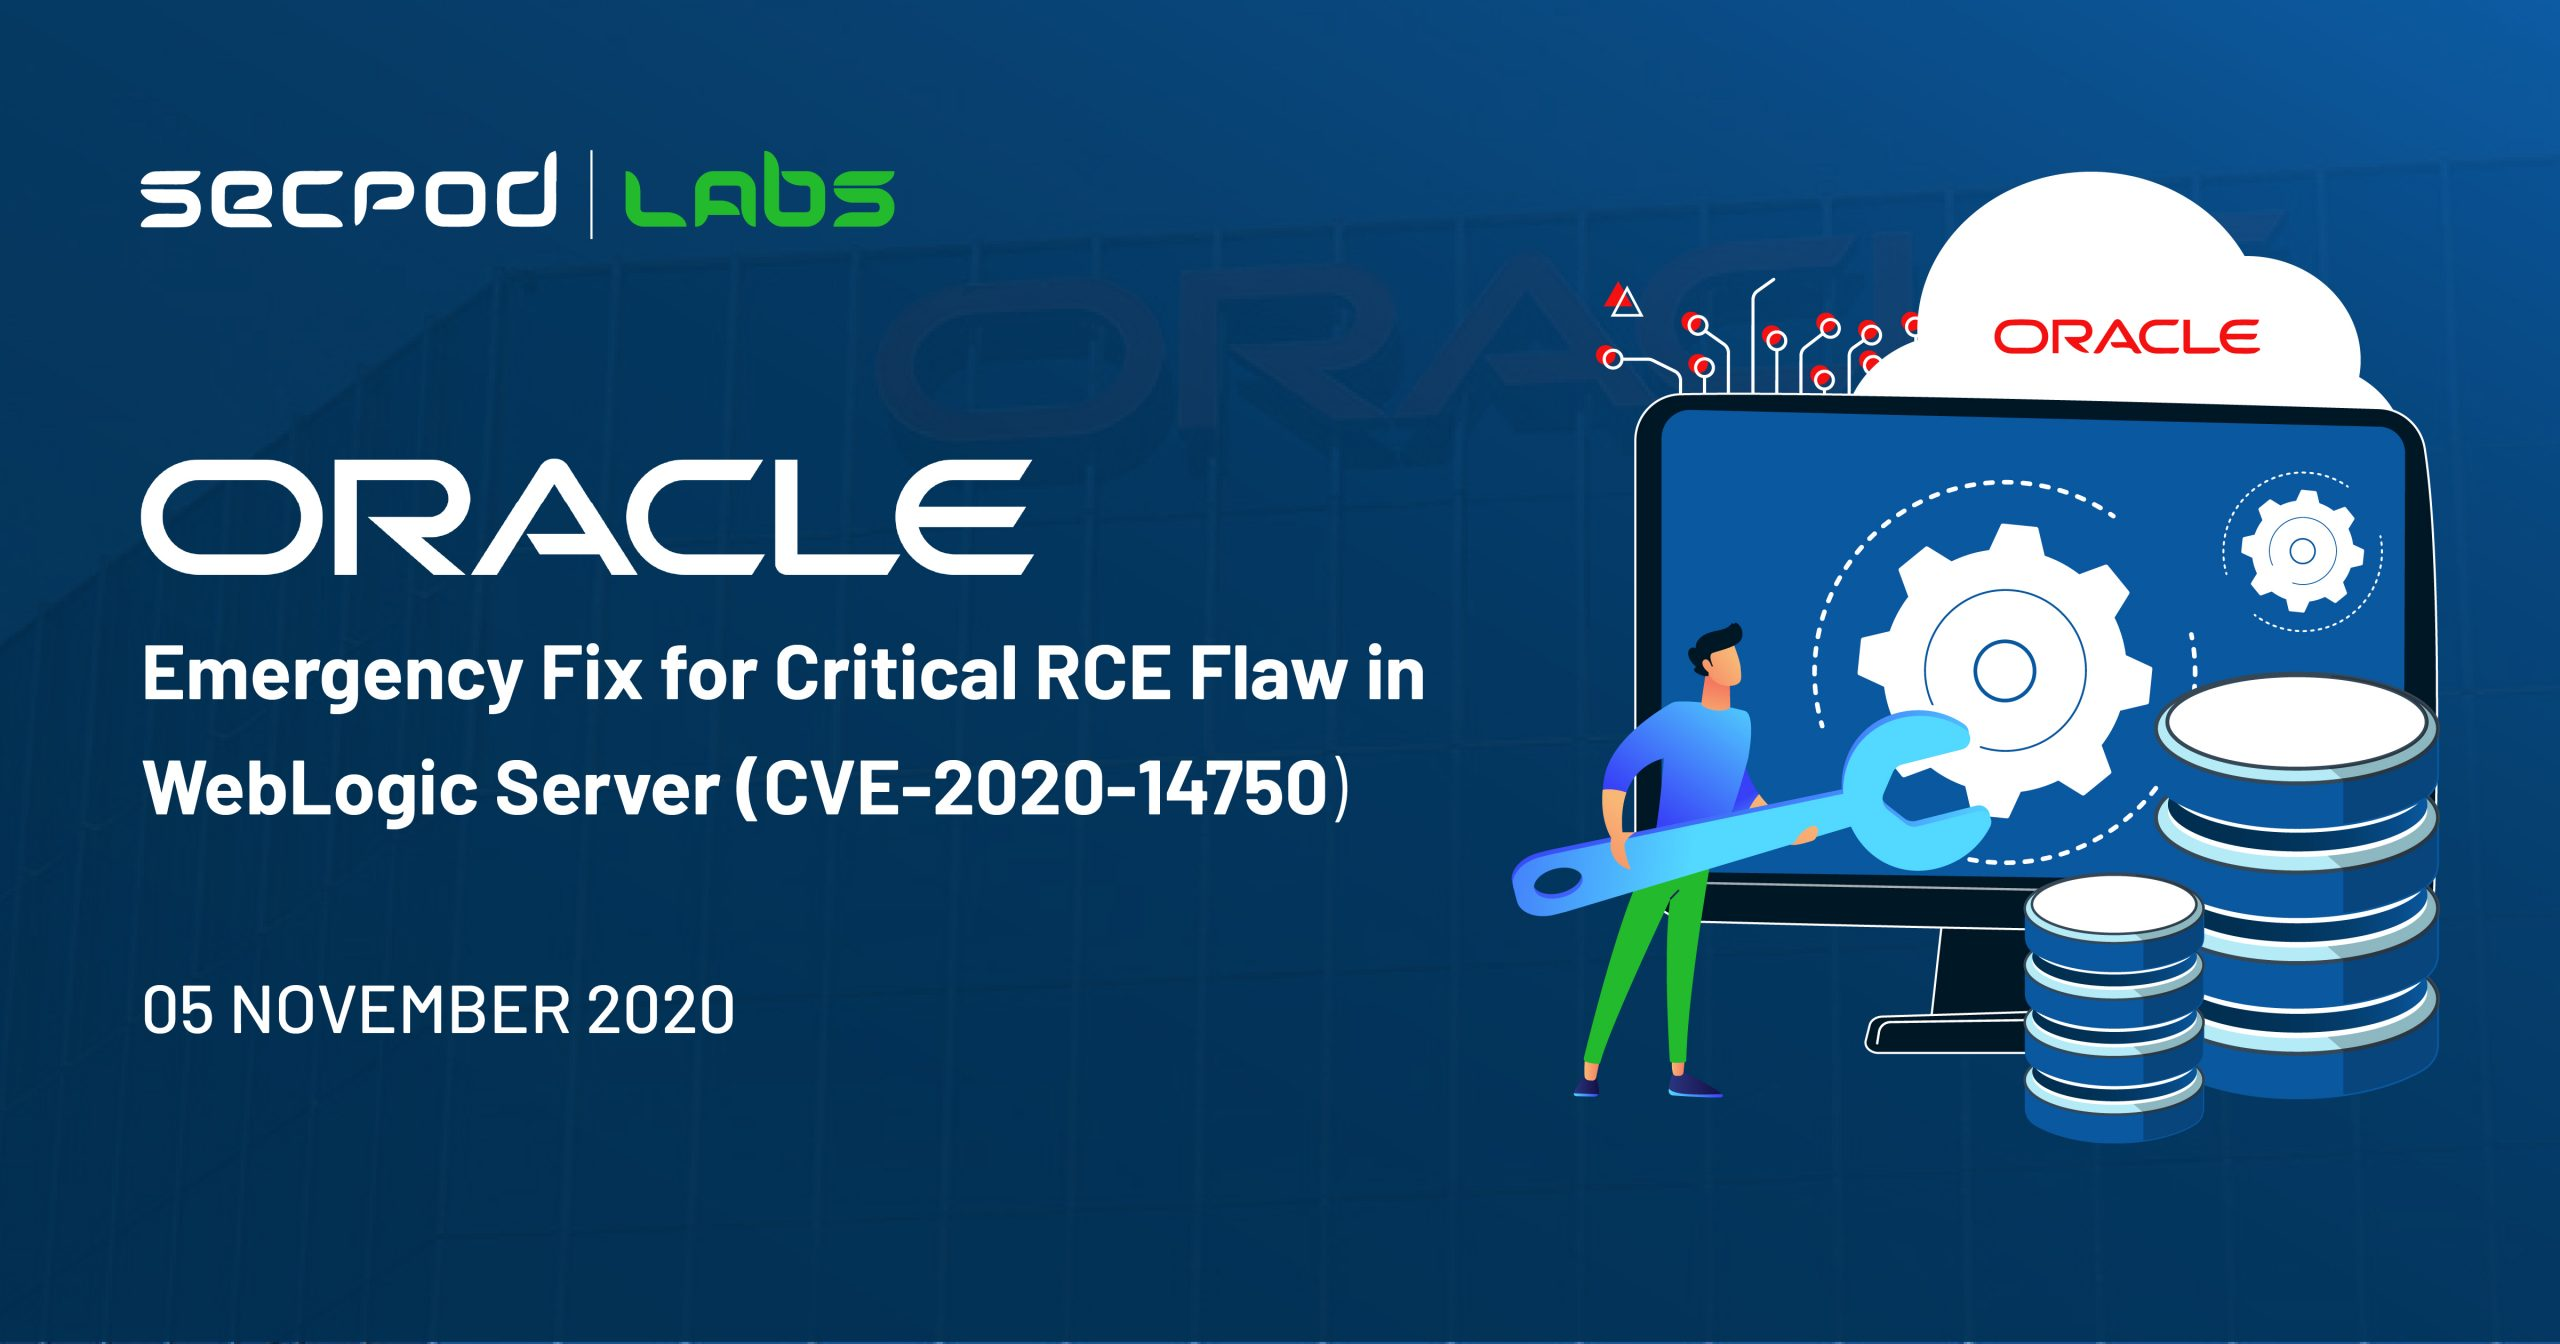 Oracle Emergency Fix for Critical RCE Flaw in WebLogic Server